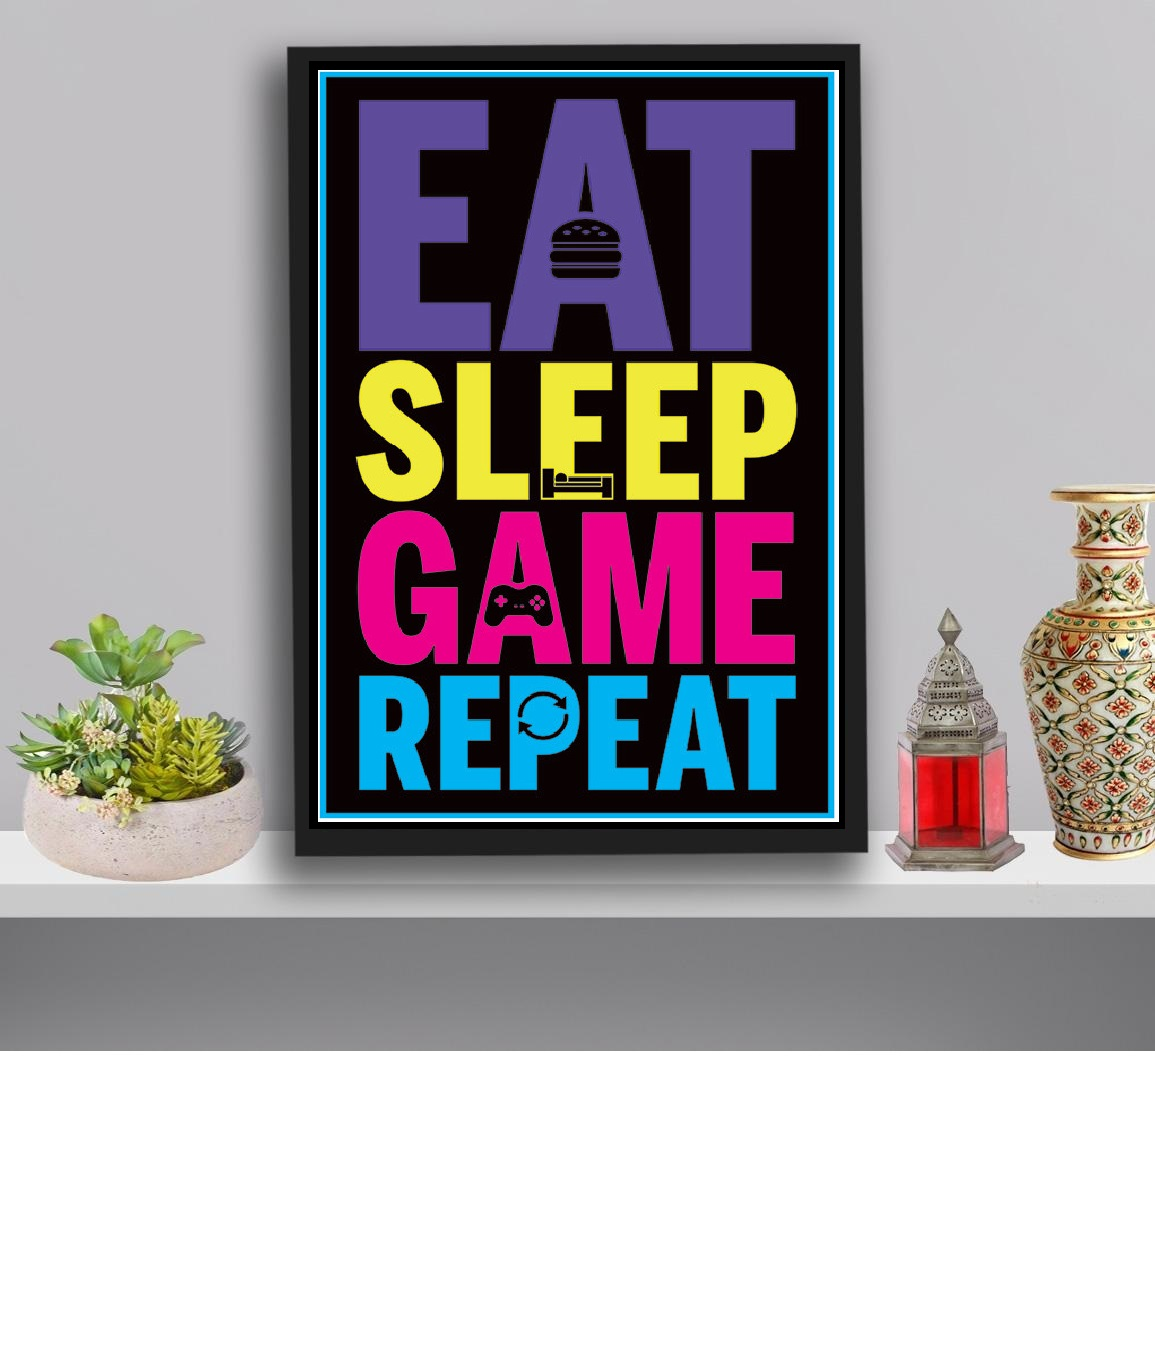 Eat, Sleep, Game, Repeat - Gaming Picture Frame for Wall Decoration Wall Art Hanging Home Decoration Picture Gallery for Boy's room